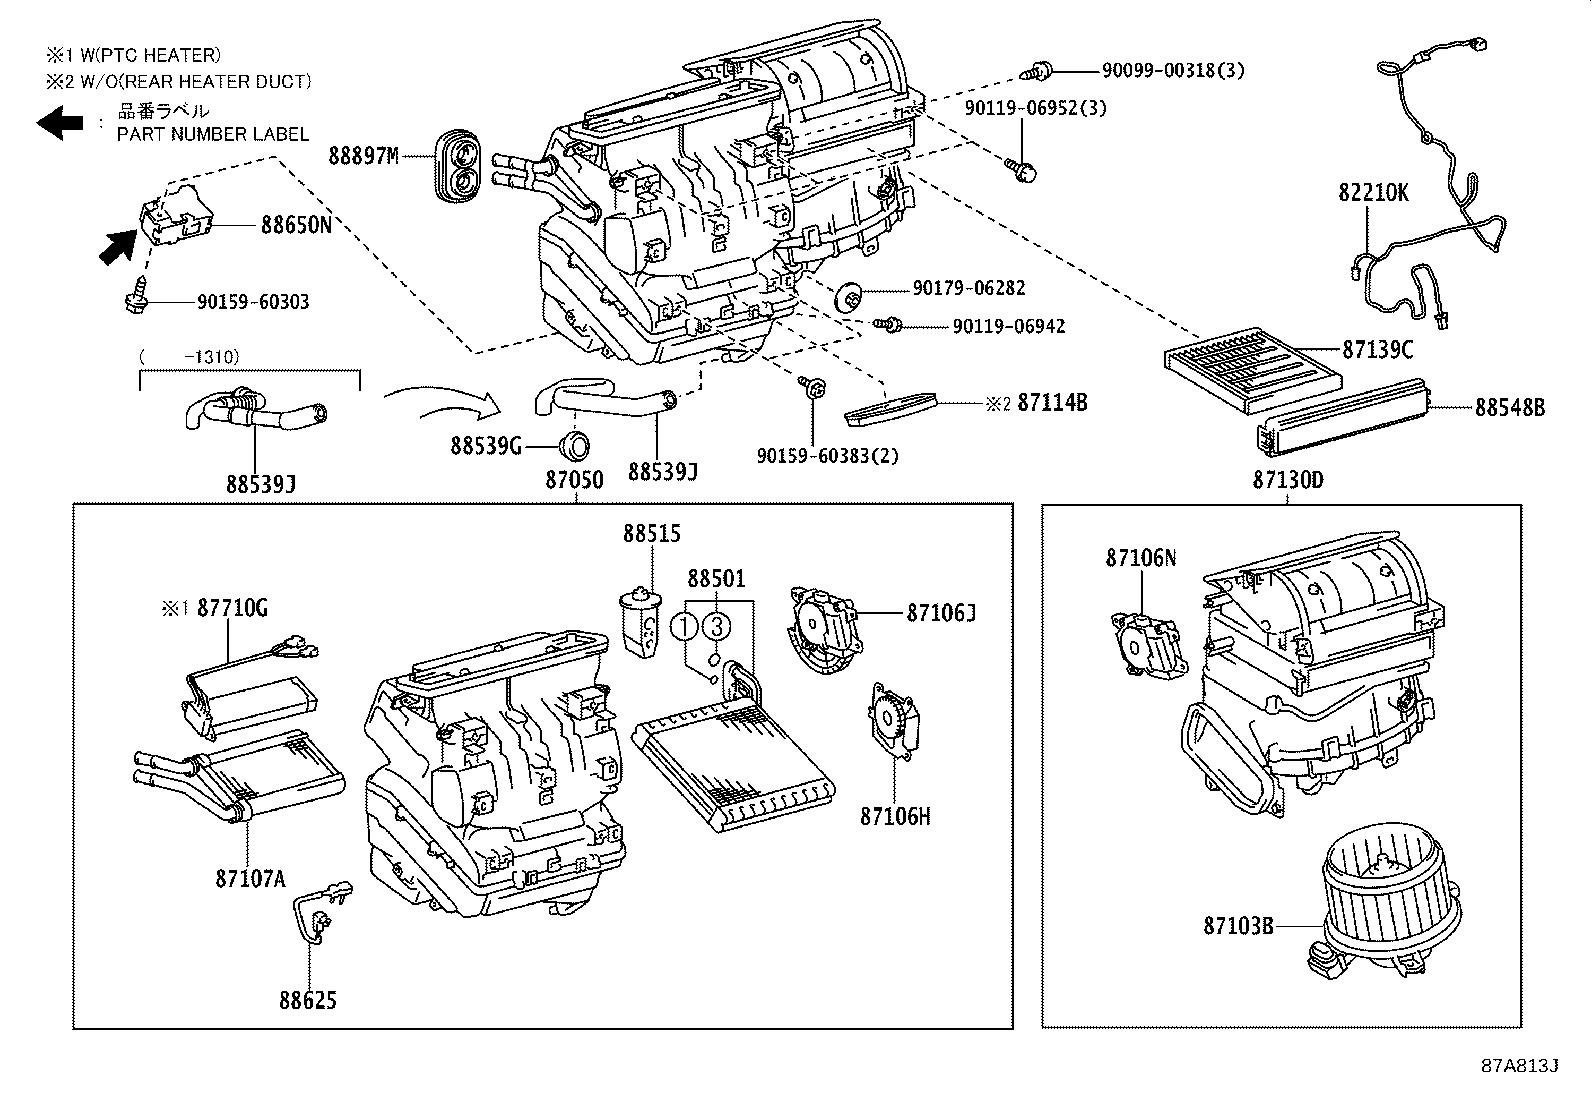 Diagram HEATING & AIR CONDITIONING - COOLER UNIT for your 2012 Toyota Prius One